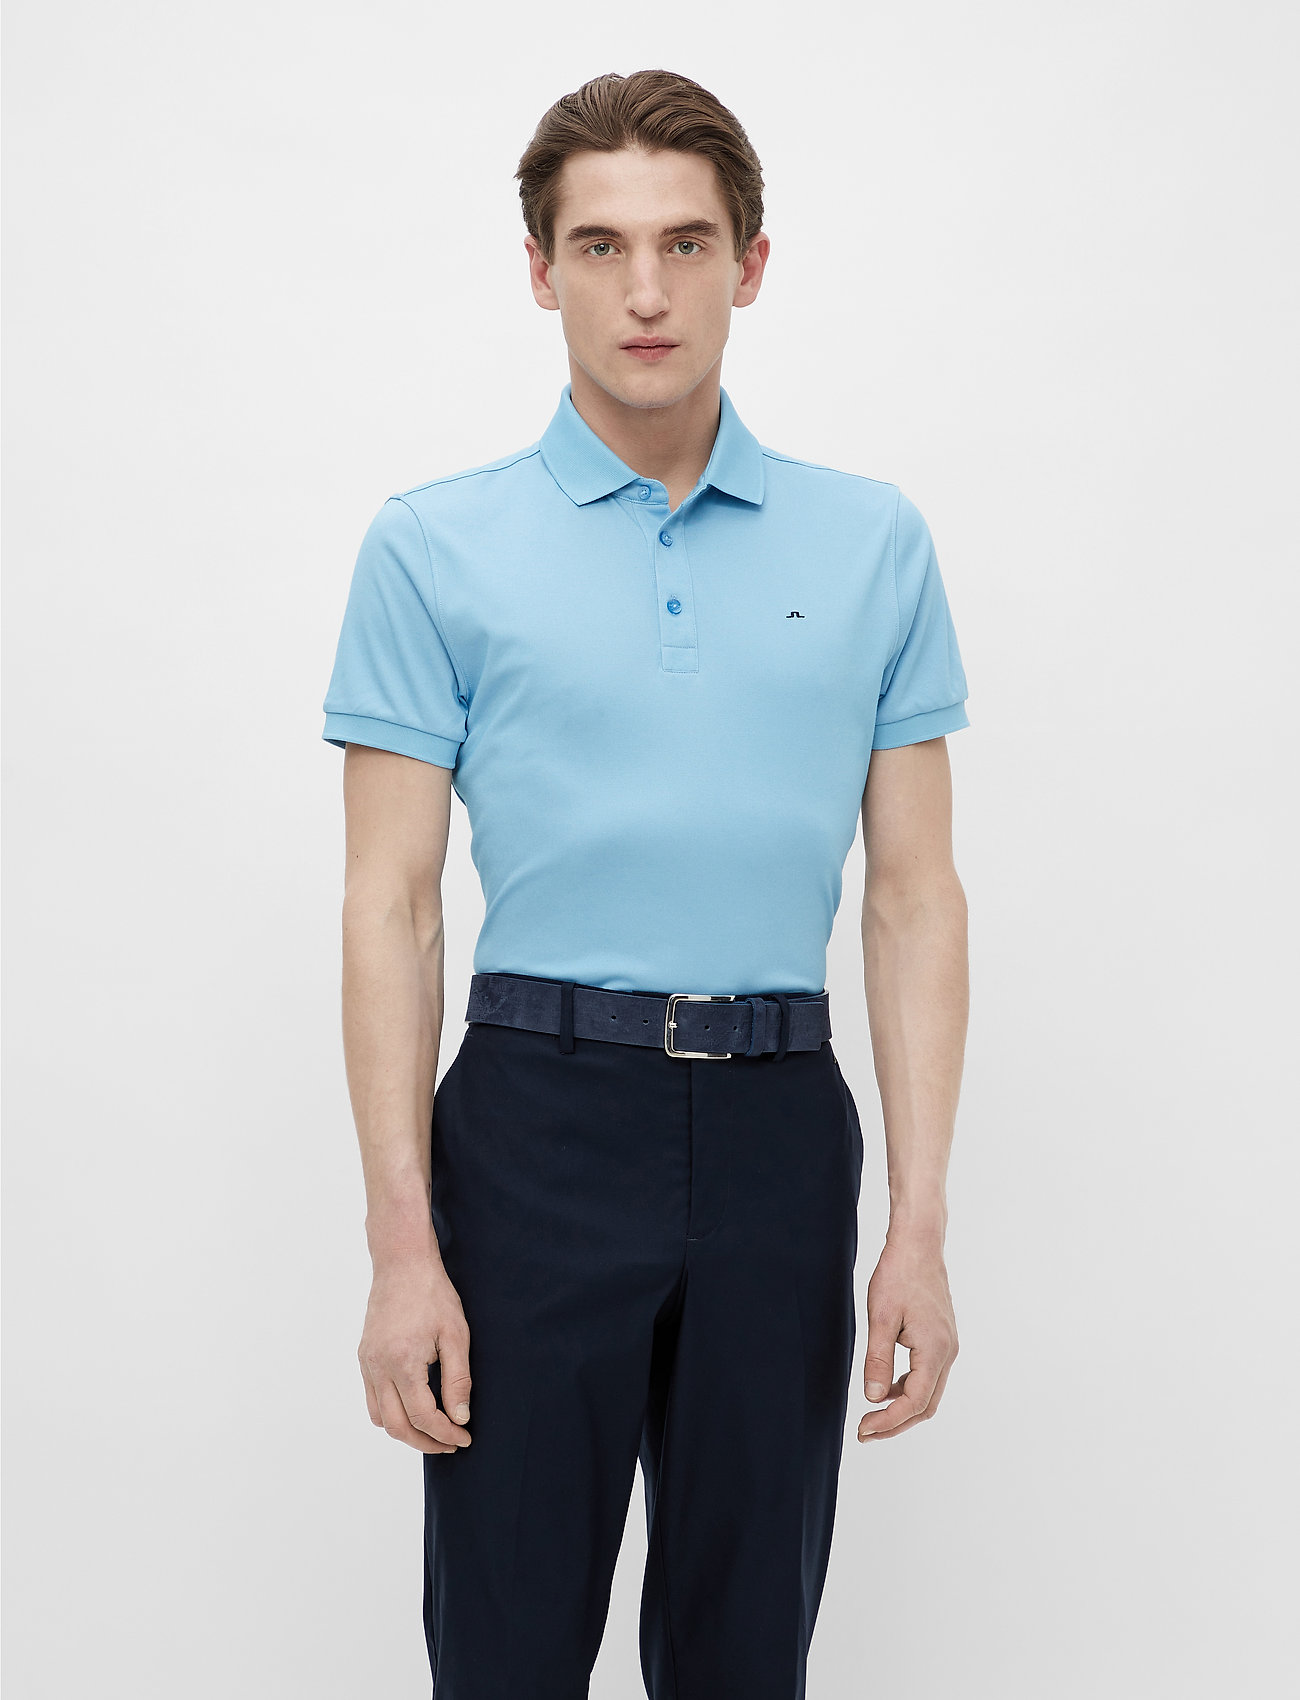 J. Lindeberg Golf - Stan Regular Fit Golf Polo - kurzärmelig - ocean blue melange - 0